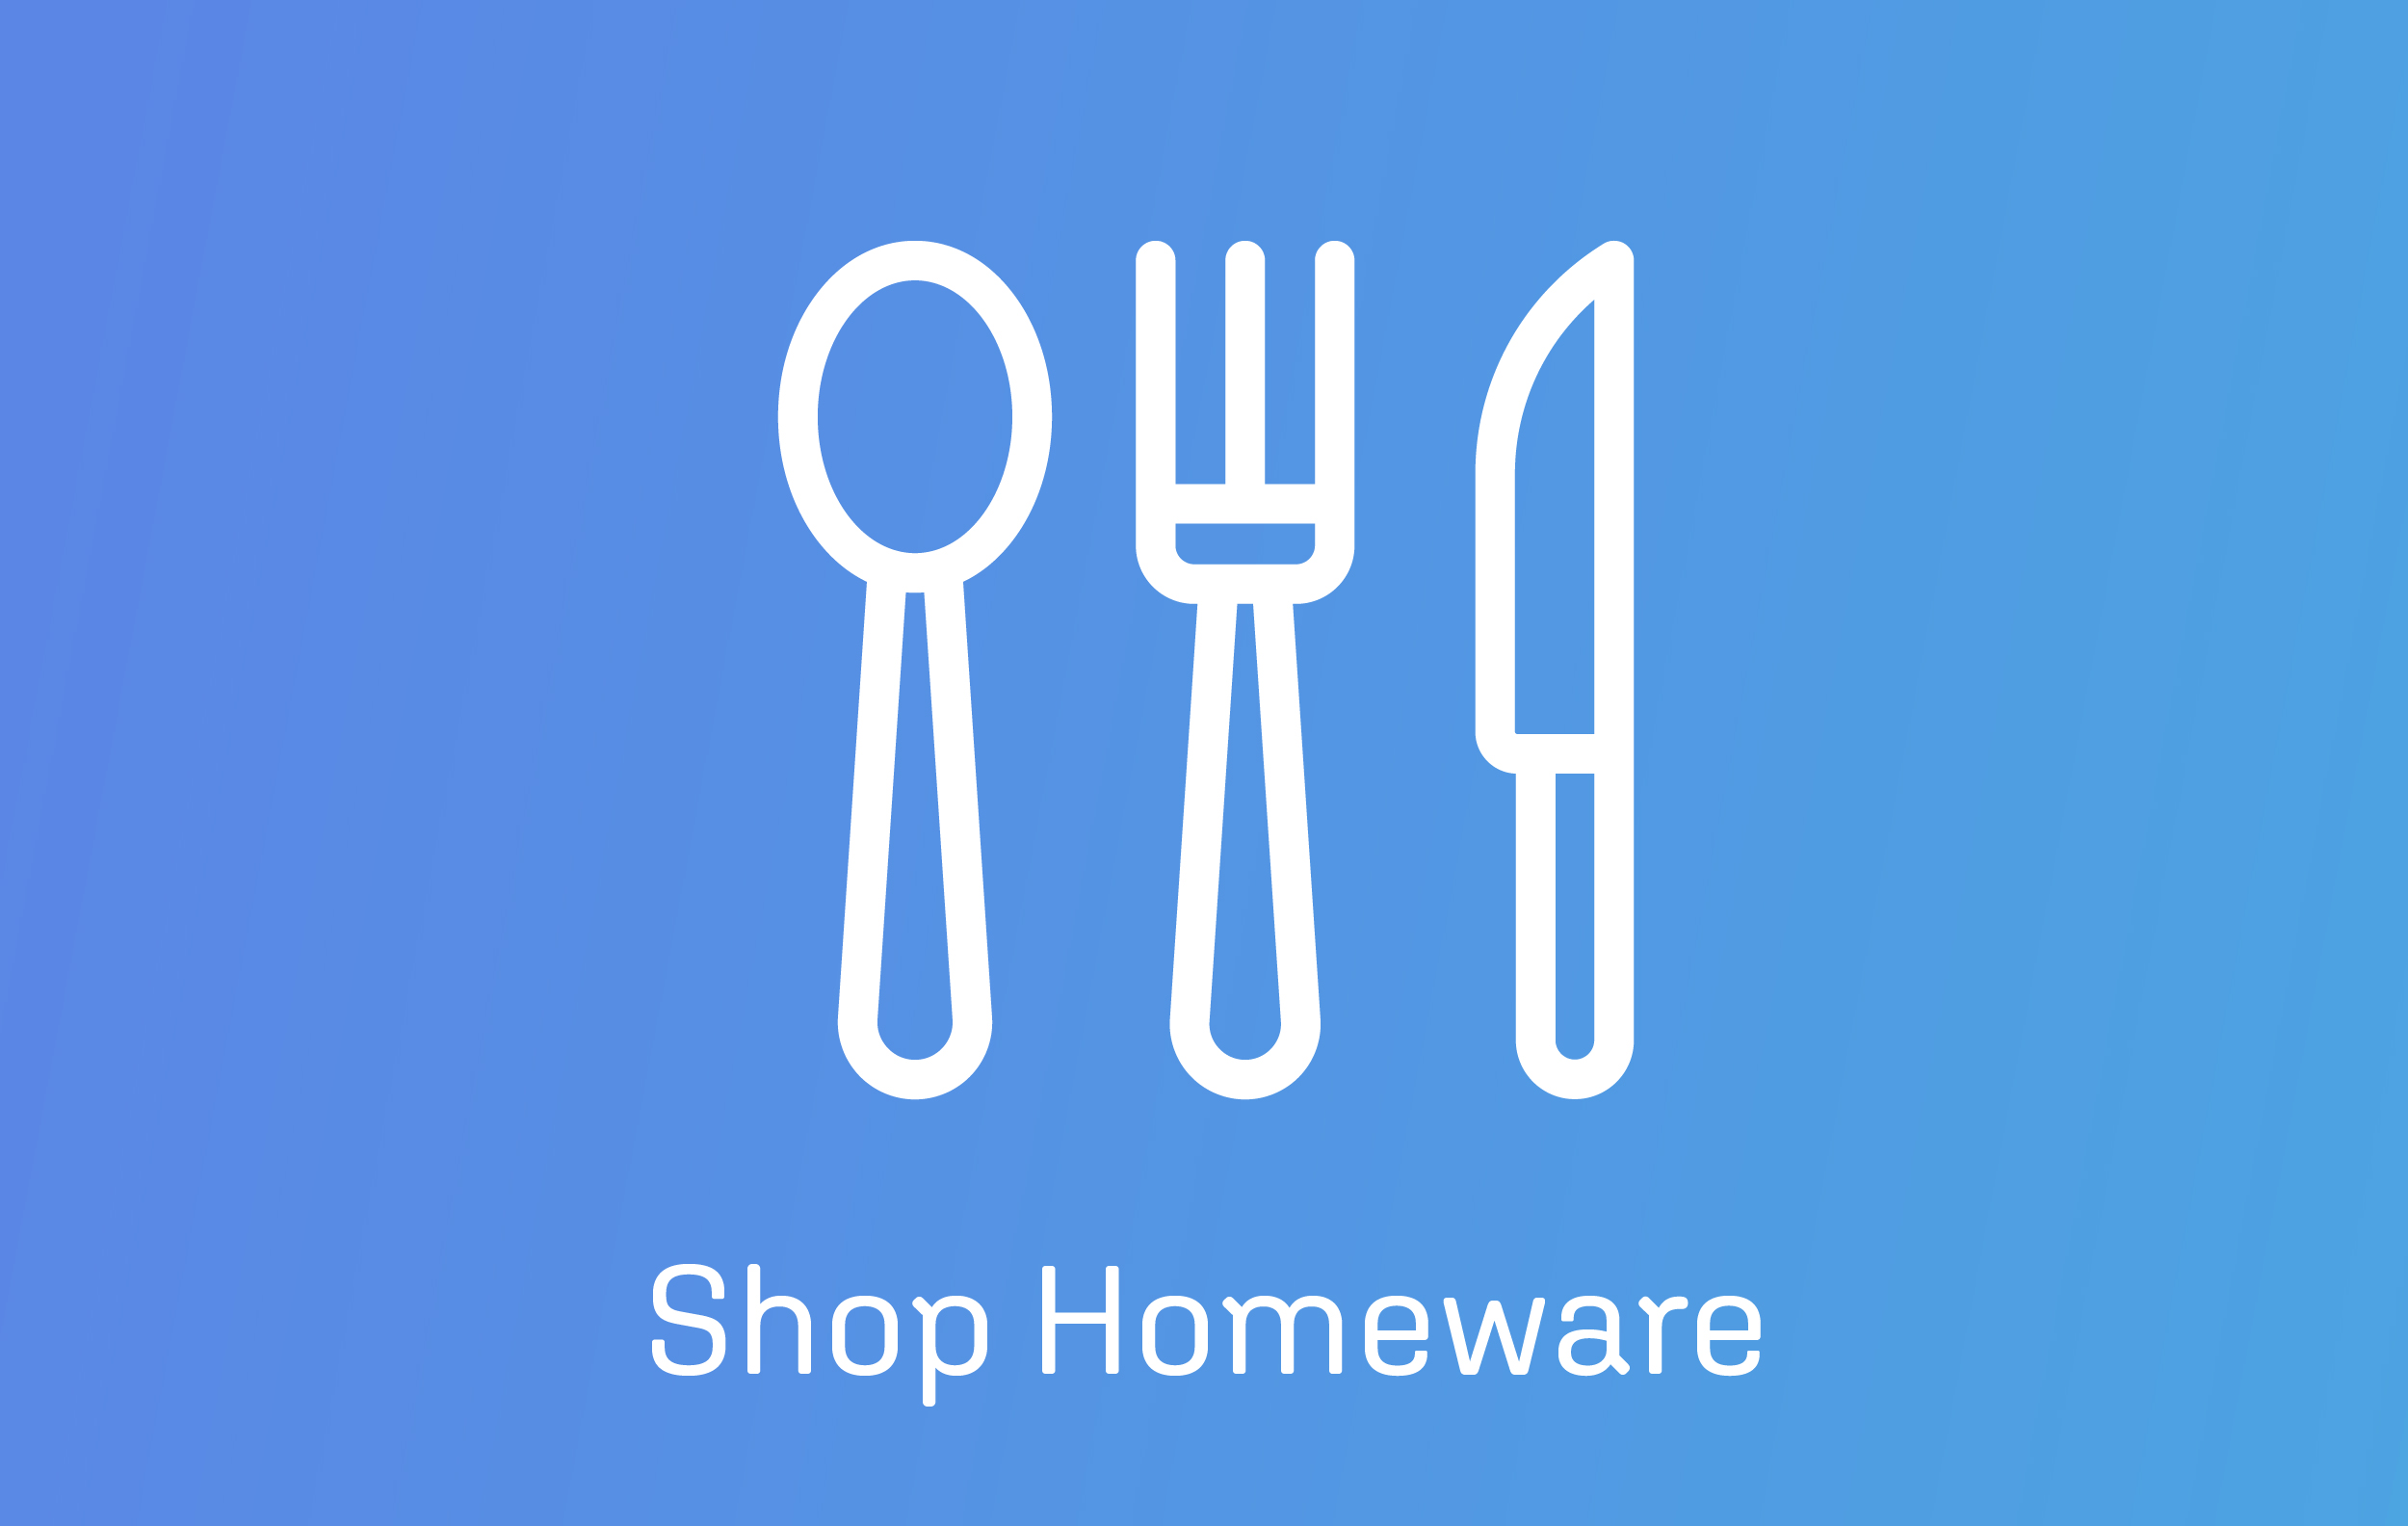 Shop homeware